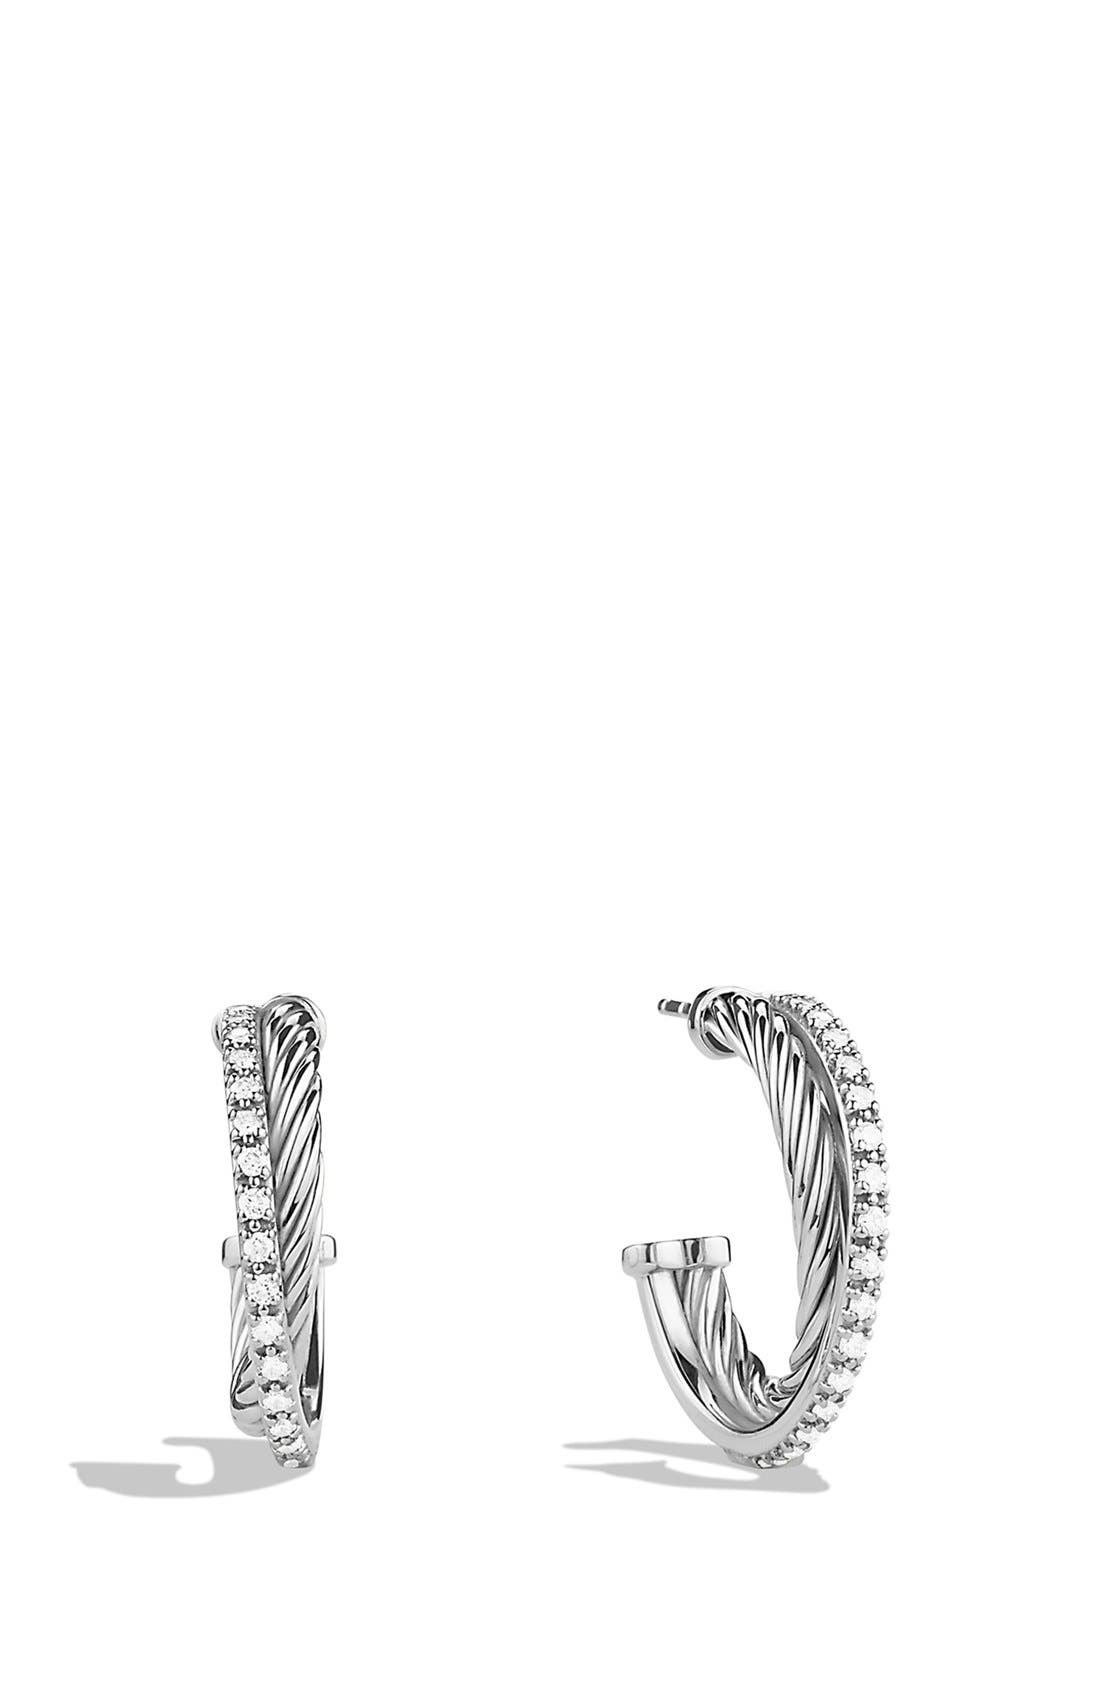 DAVID YURMAN Crossover Small Diamond Hoop Earrings